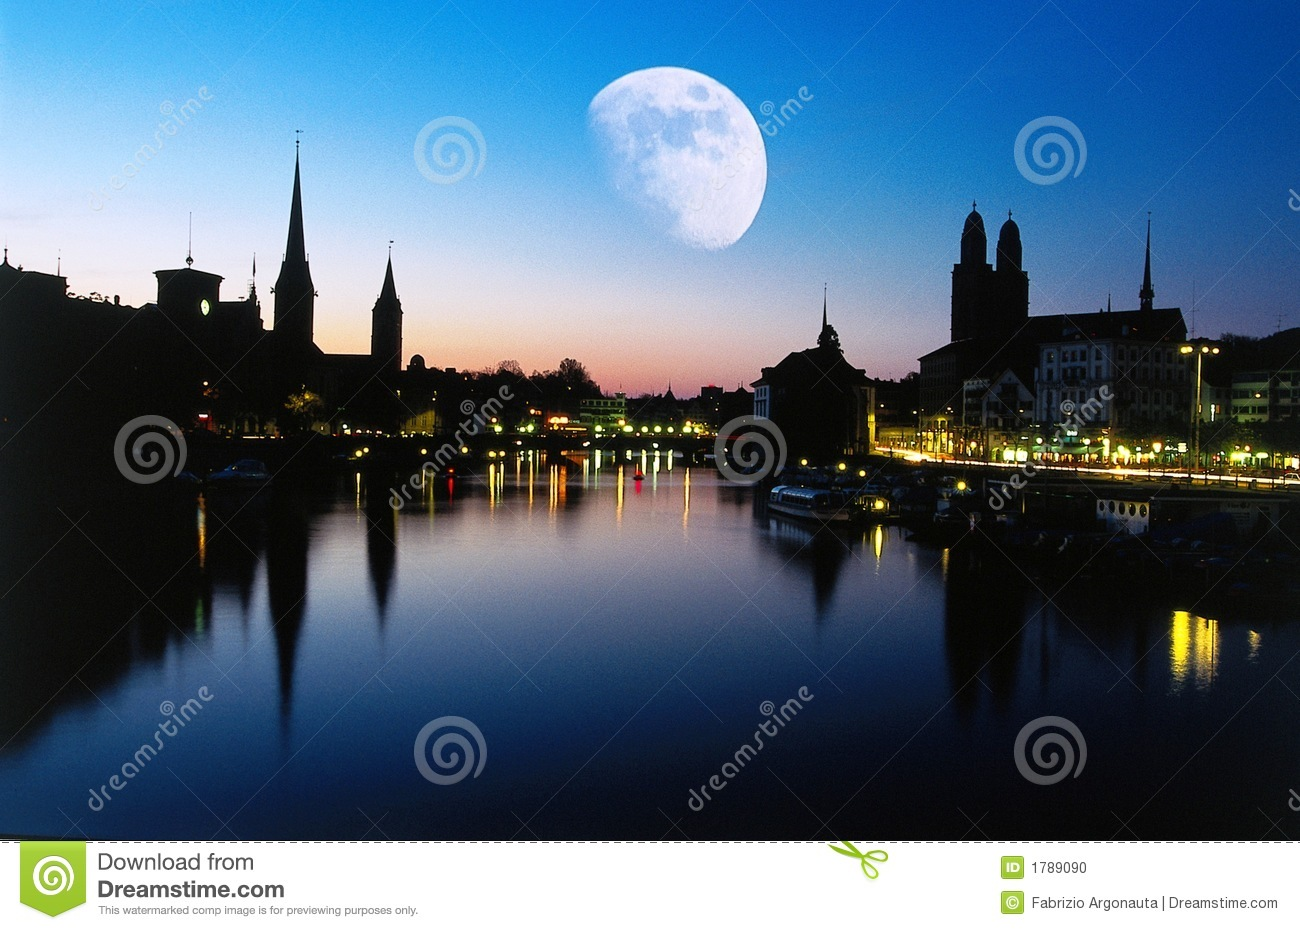 Moon at dusk, Zurich